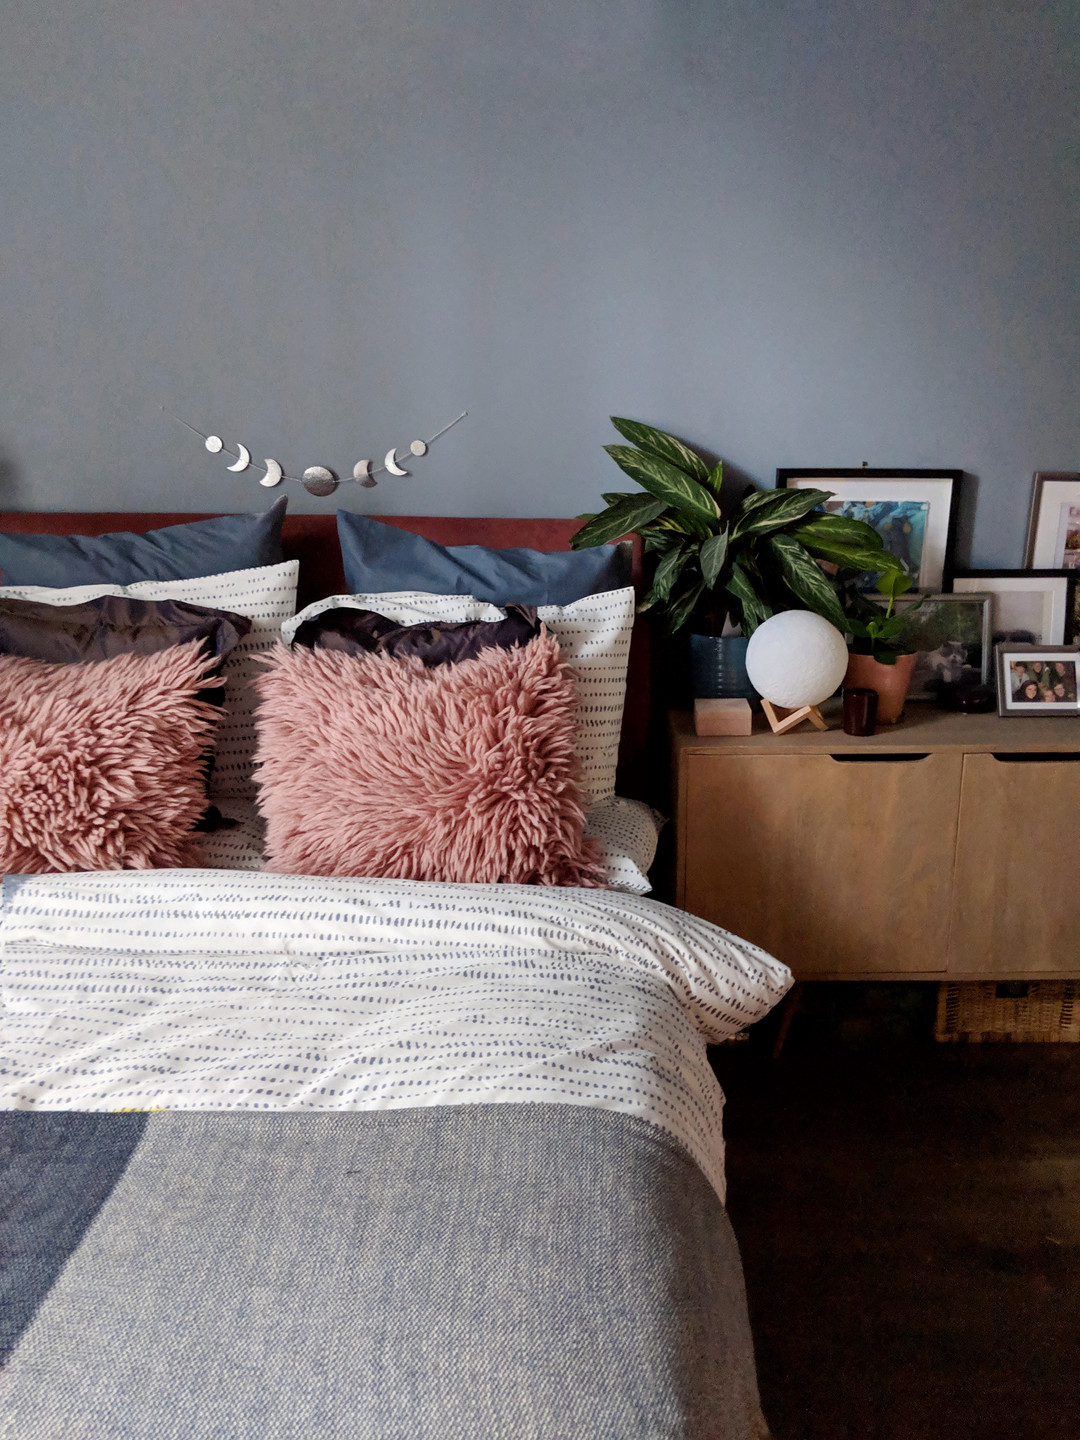 Comfy pillows styled on bed with sideboard dressed with many photos and plants